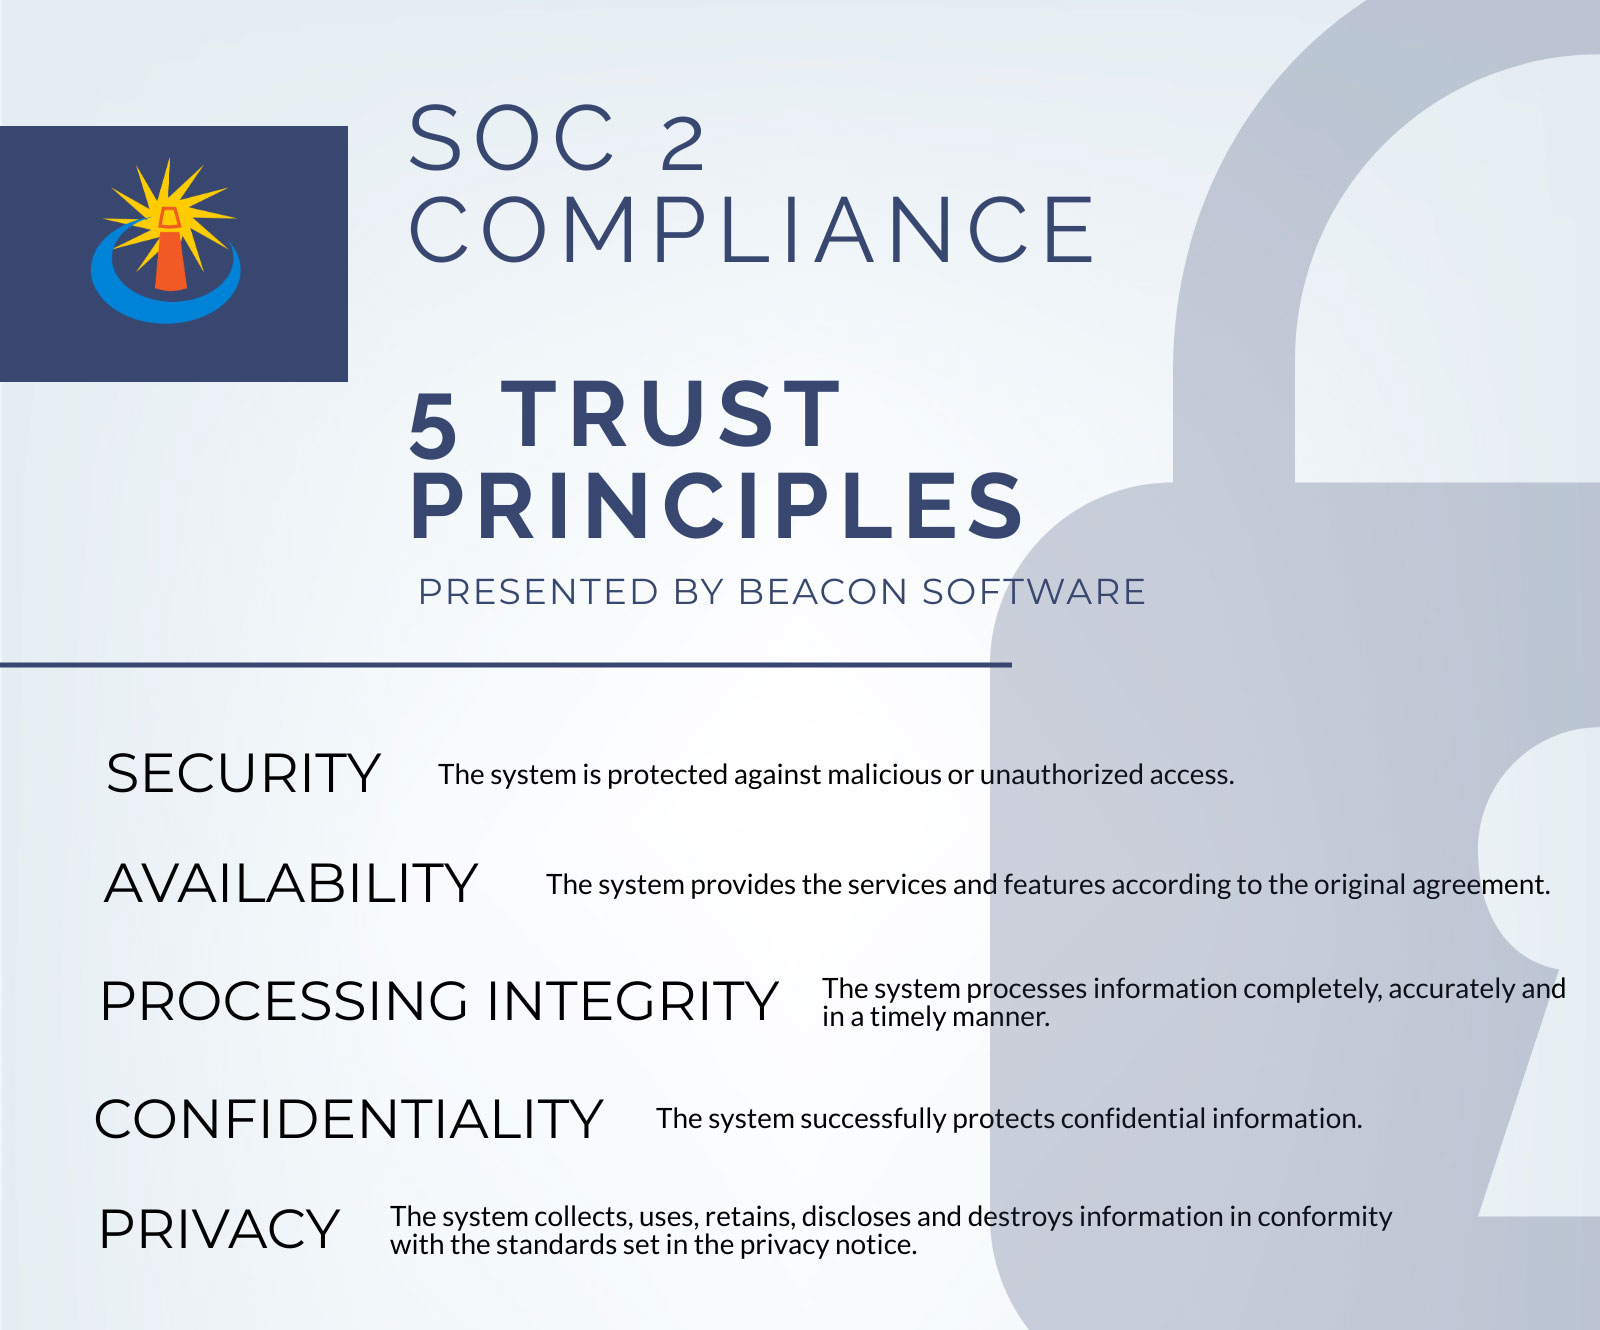 Soc2-ComplianceGraphic